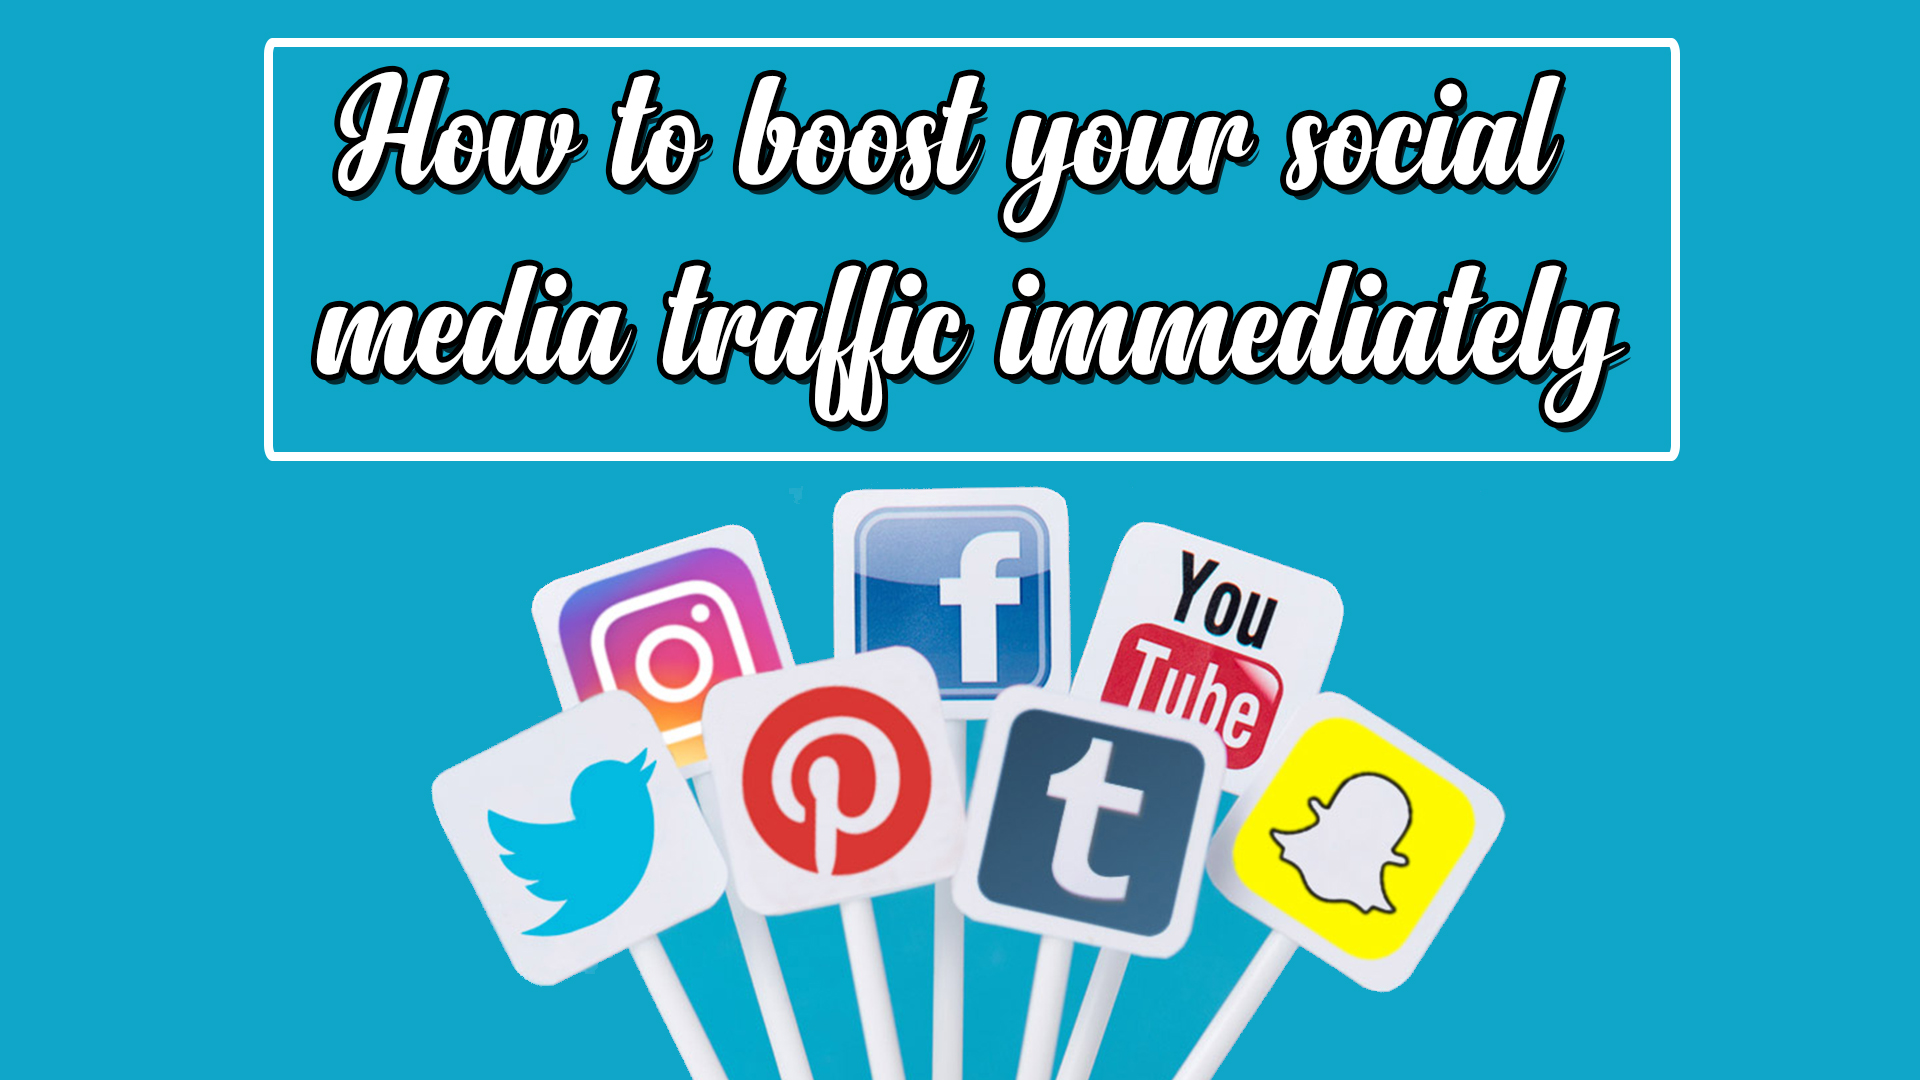 How to boost your social media traffic immediately